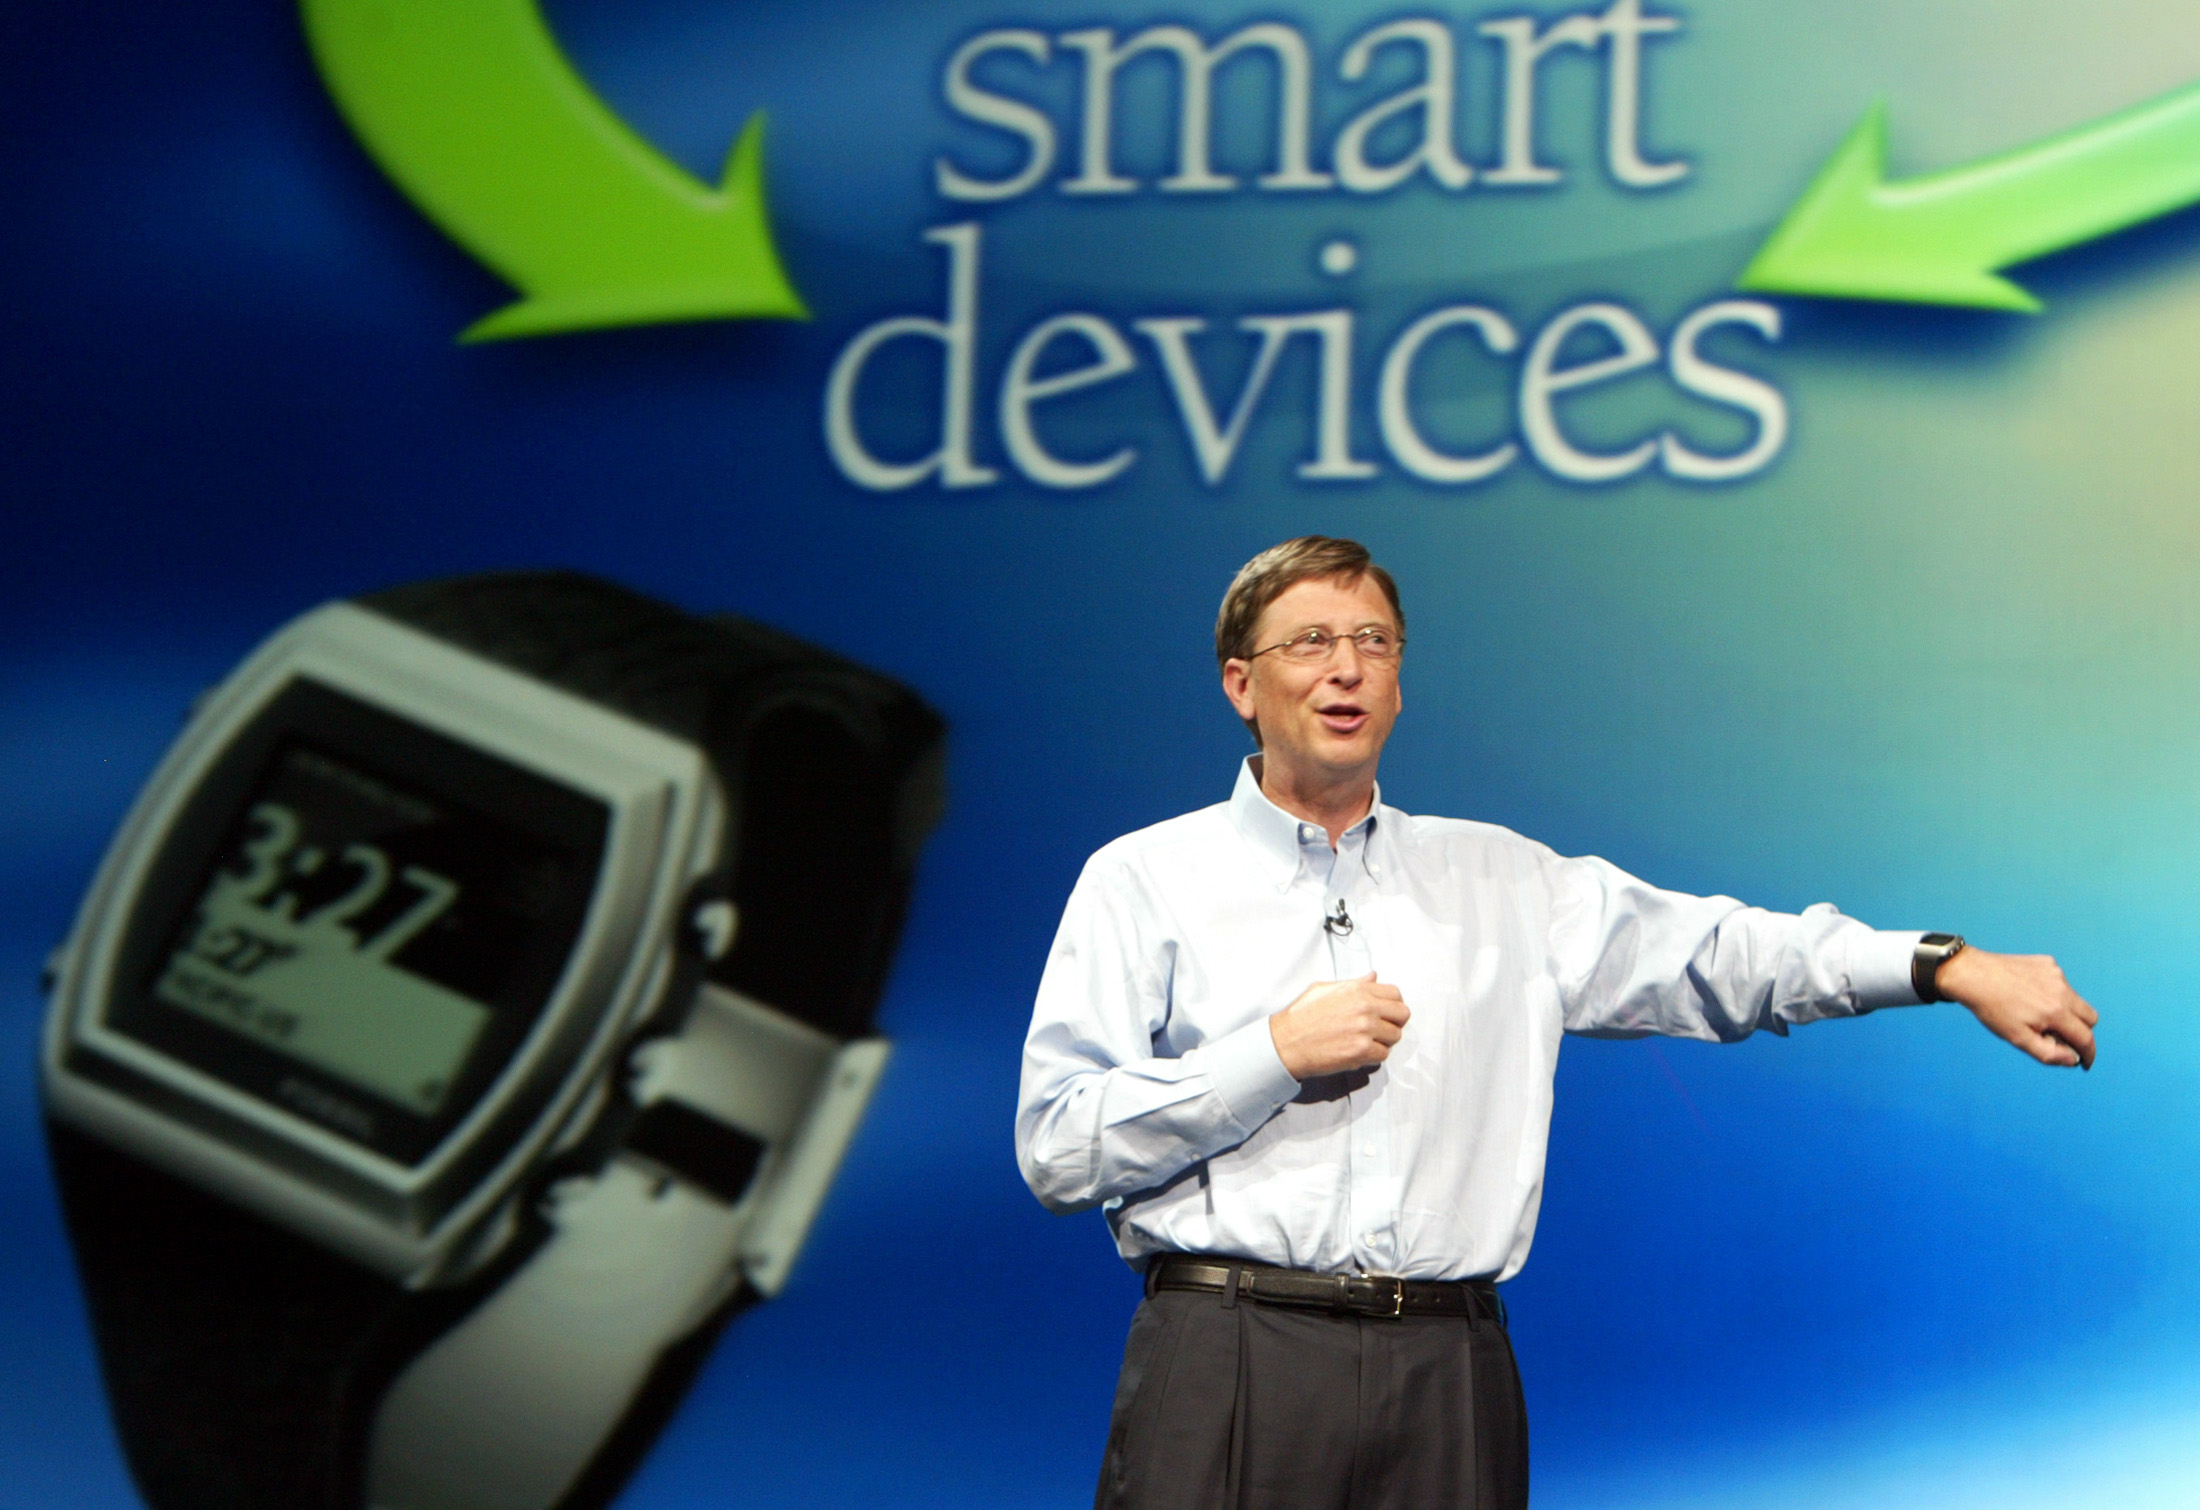 BILL GATES SHOWS THE NEW FOSSIL SPOT WATCH AT COMEX